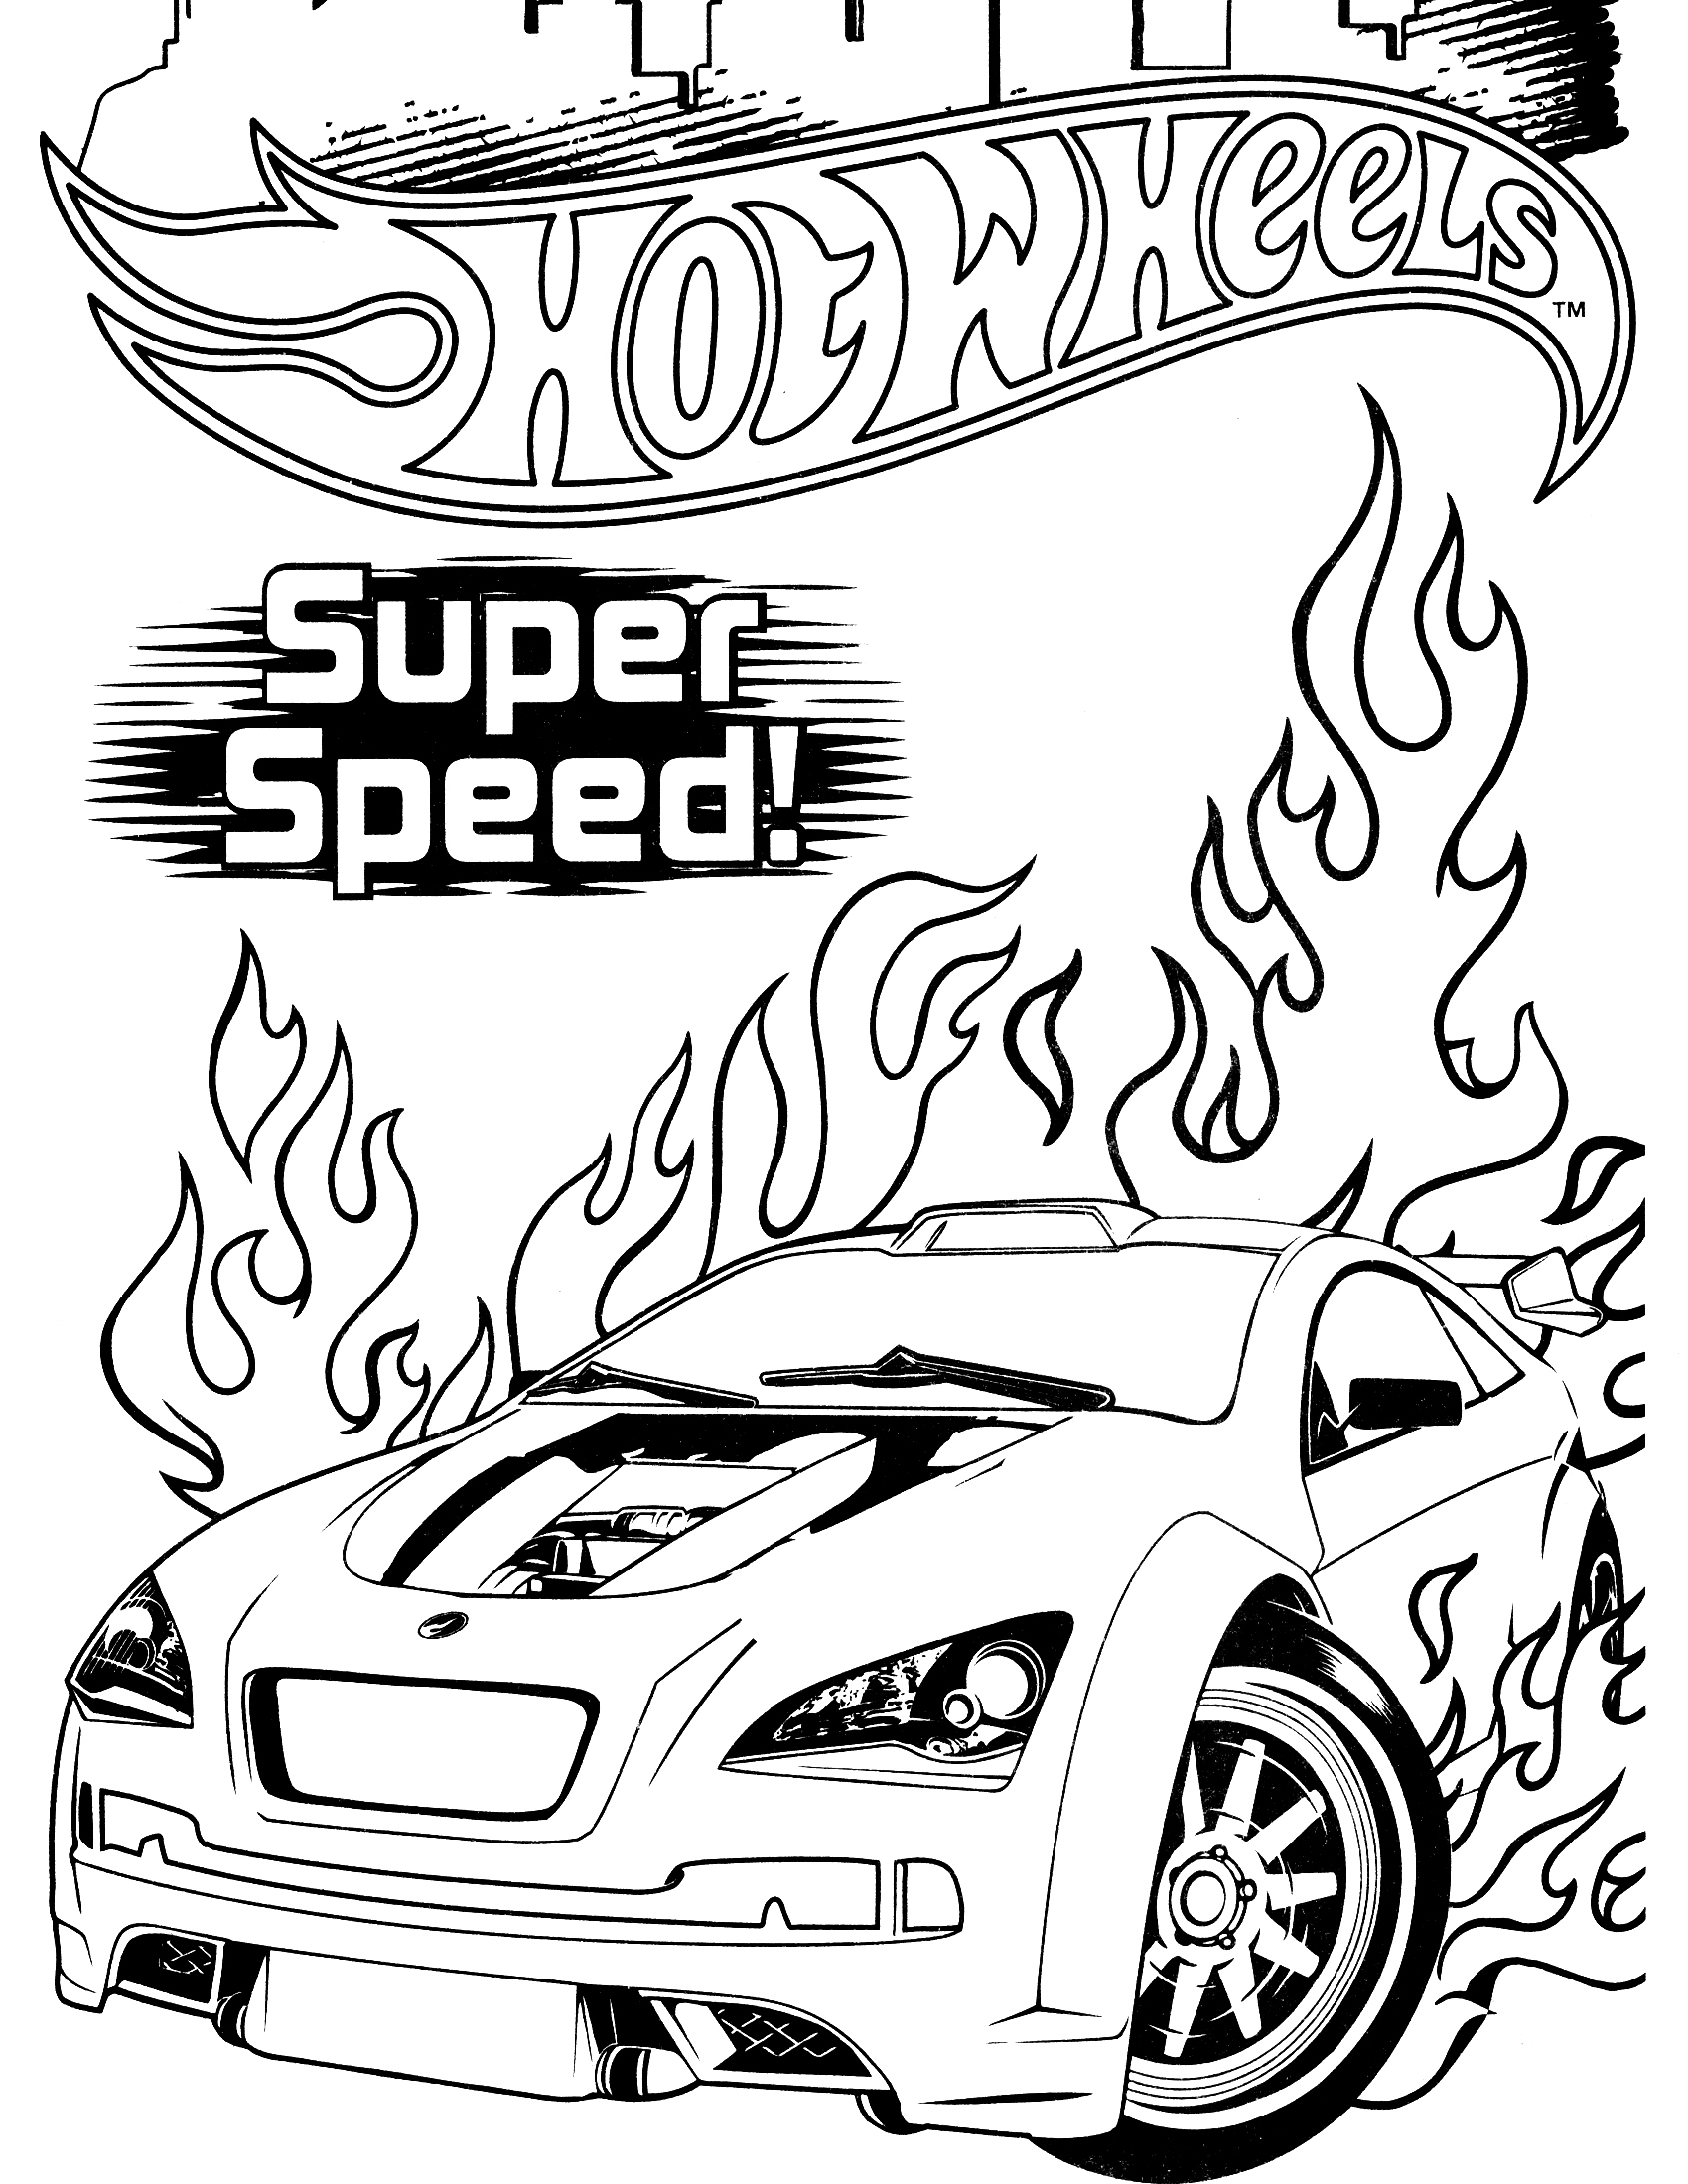 hot wheels cars pictures to color hot wheels racing league hot wheels coloring pages set 4 hot to cars wheels color pictures